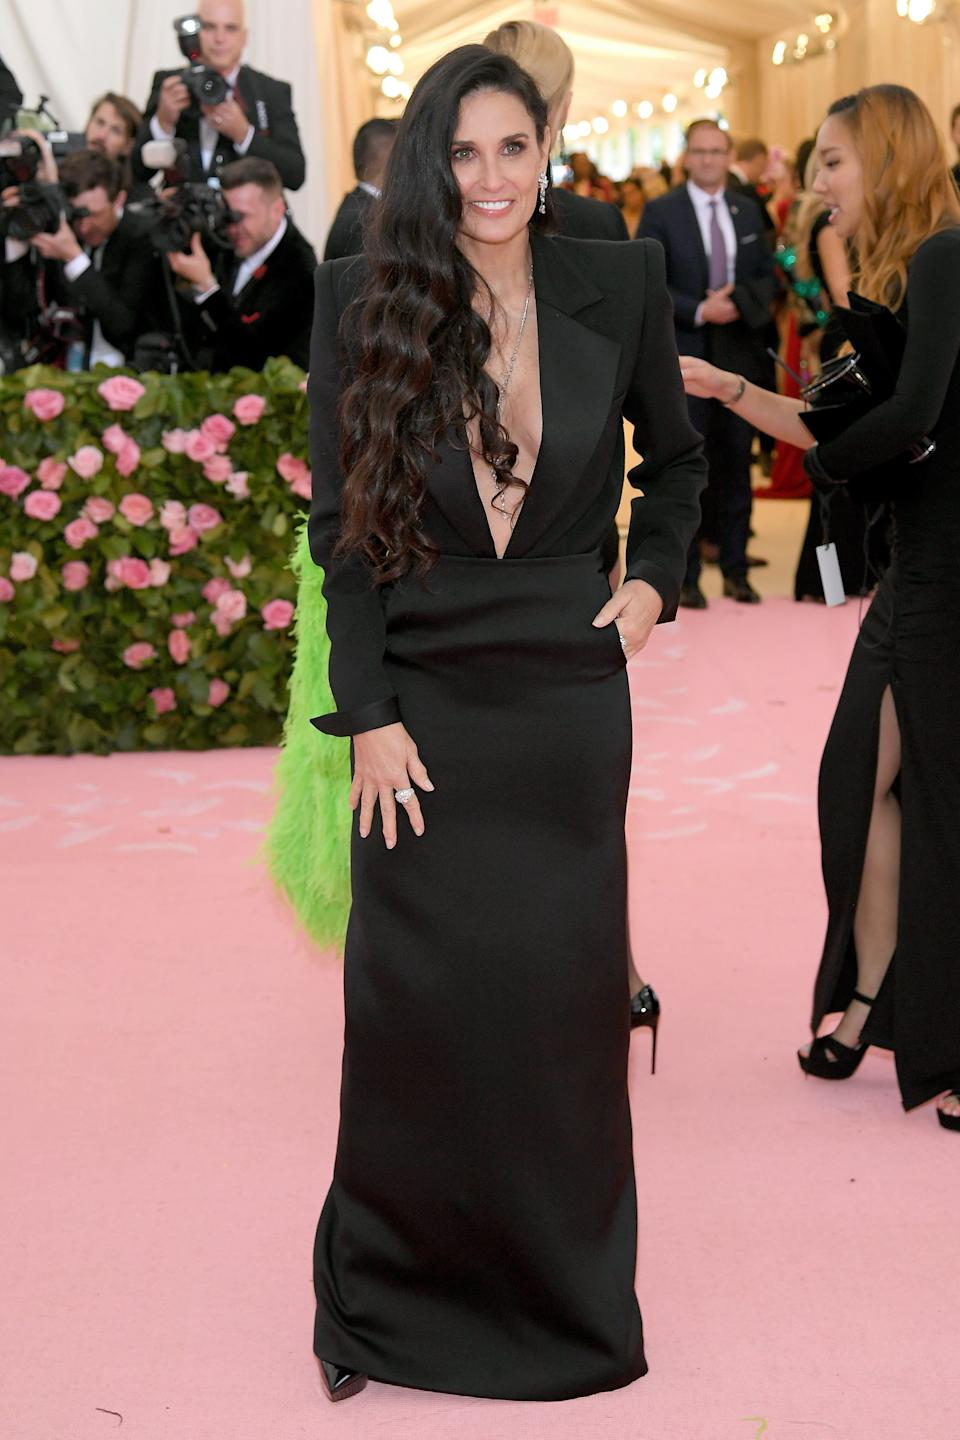 NEW YORK, NEW YORK - MAY 06: Demi Moore attends The 2019 Met Gala Celebrating Camp: Notes on Fashion at Metropolitan Museum of Art on May 06, 2019 in New York City. (Photo by Neilson Barnard/Getty Images)